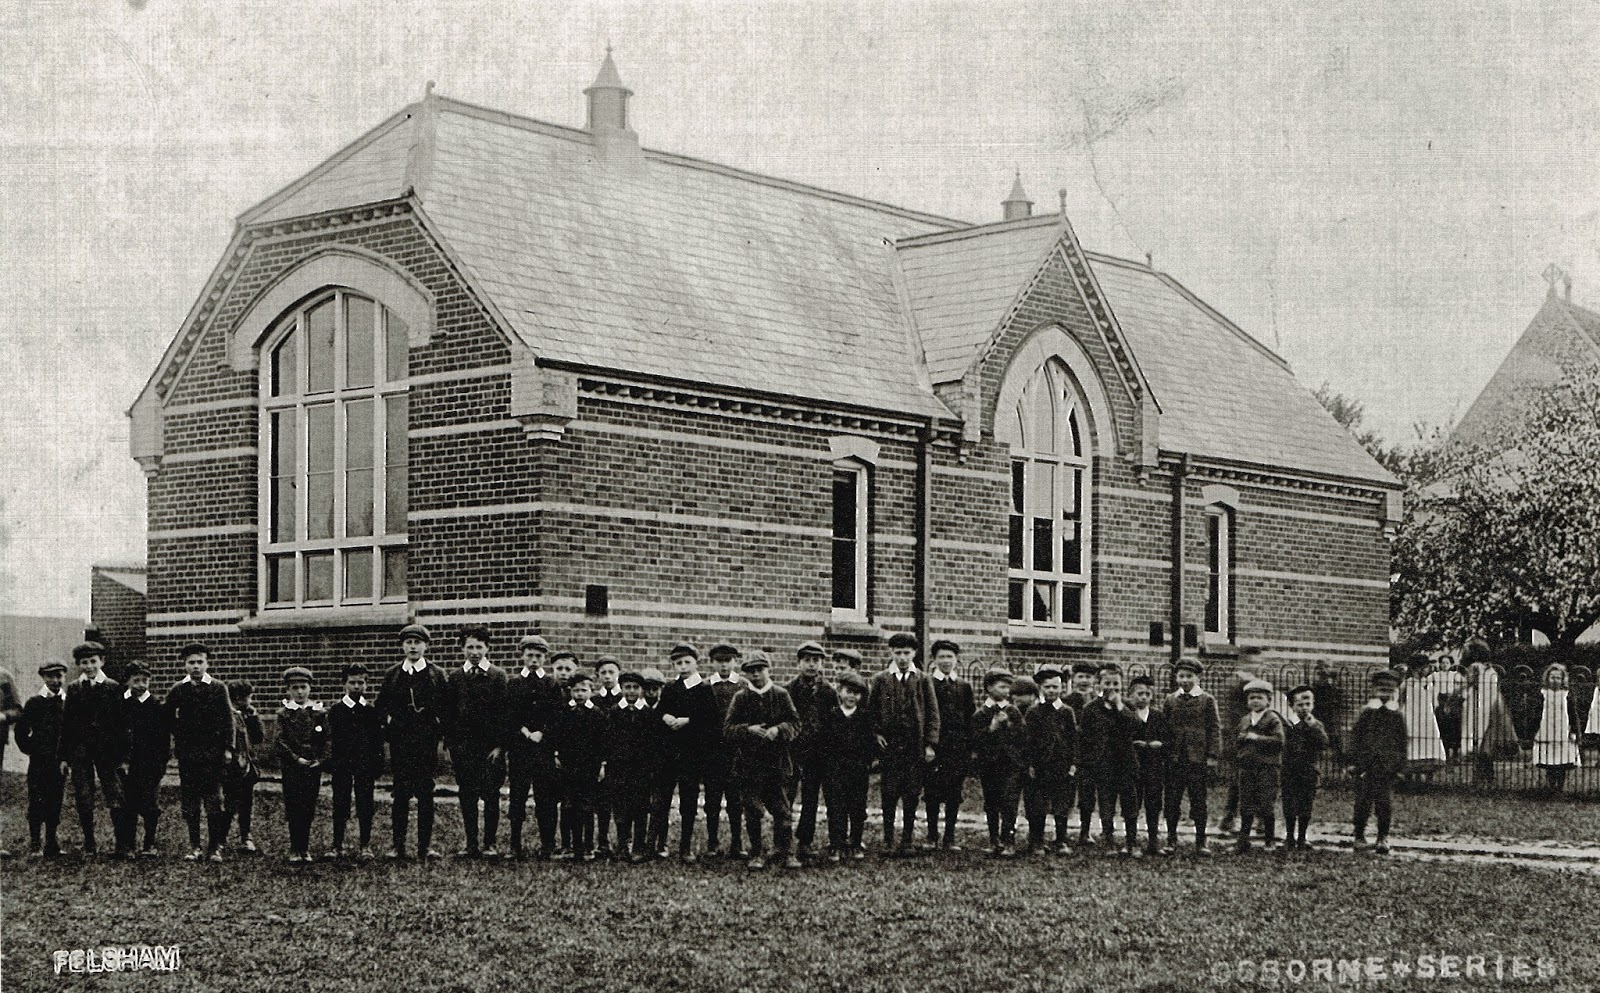 Felsham and Gedding School undated photo